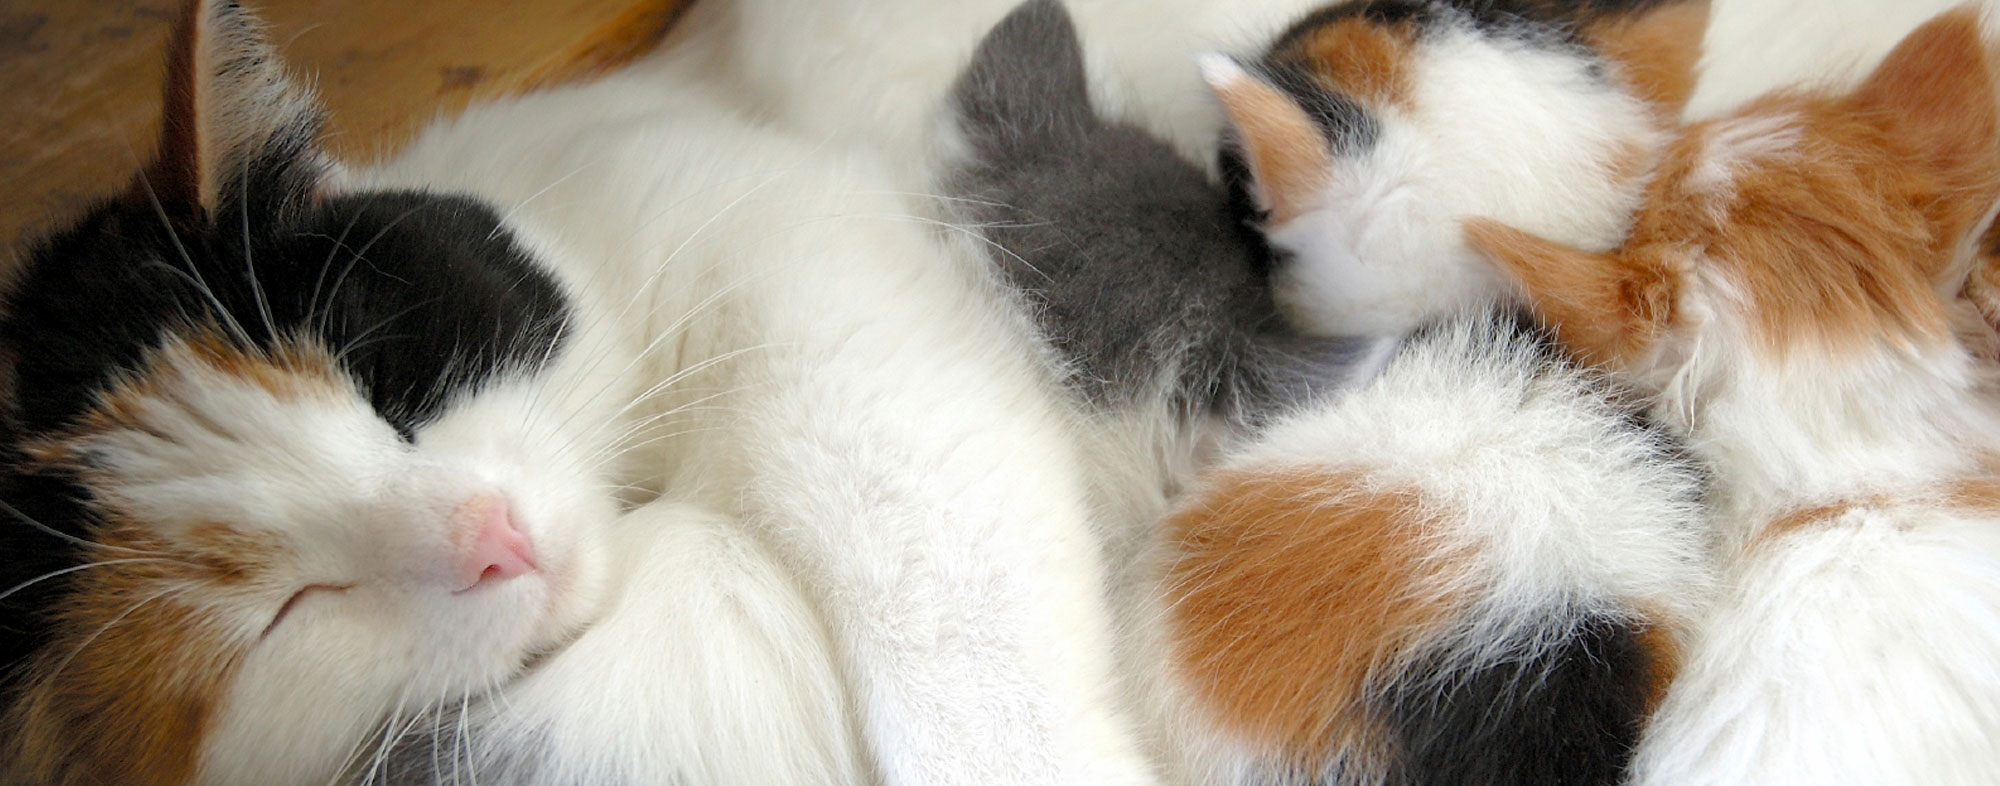 Reclining on her side, mother cat allows her newborn kittens to nurse